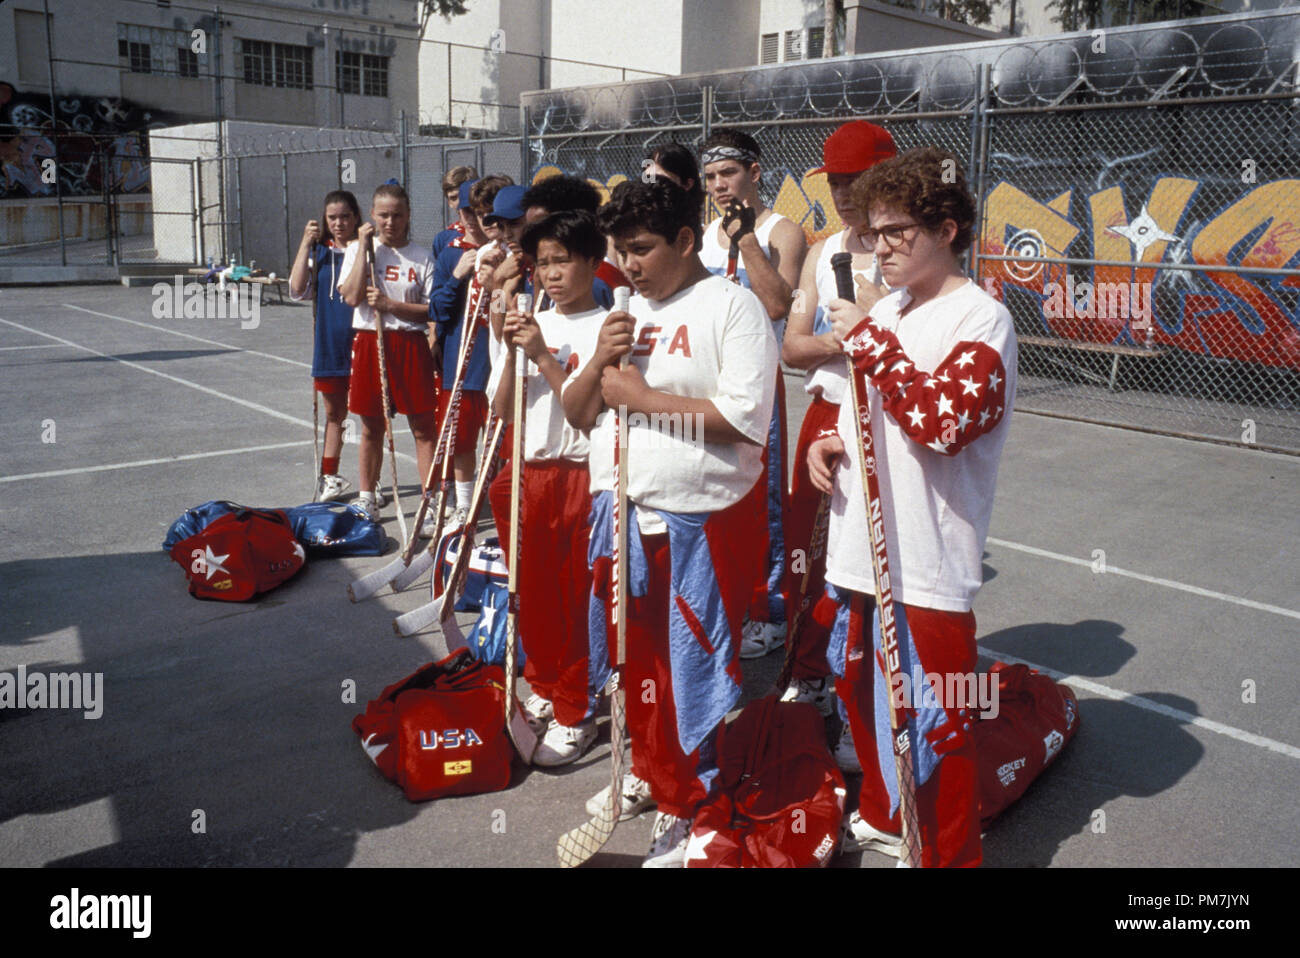 Film Still from 'D2: The Mighty Ducks' Marguerite Moreau, Colombe Jacobsen-Derstine, Vincent Larusso, Elden Henson, Joshua Jackson, Mike Vitar, Brandon Quintin Adams © 1994 Walt Disney Pictures Photo Credit: Dean Williams   File Reference # 31129372THA  For Editorial Use Only - All Rights Reserved - Stock Image